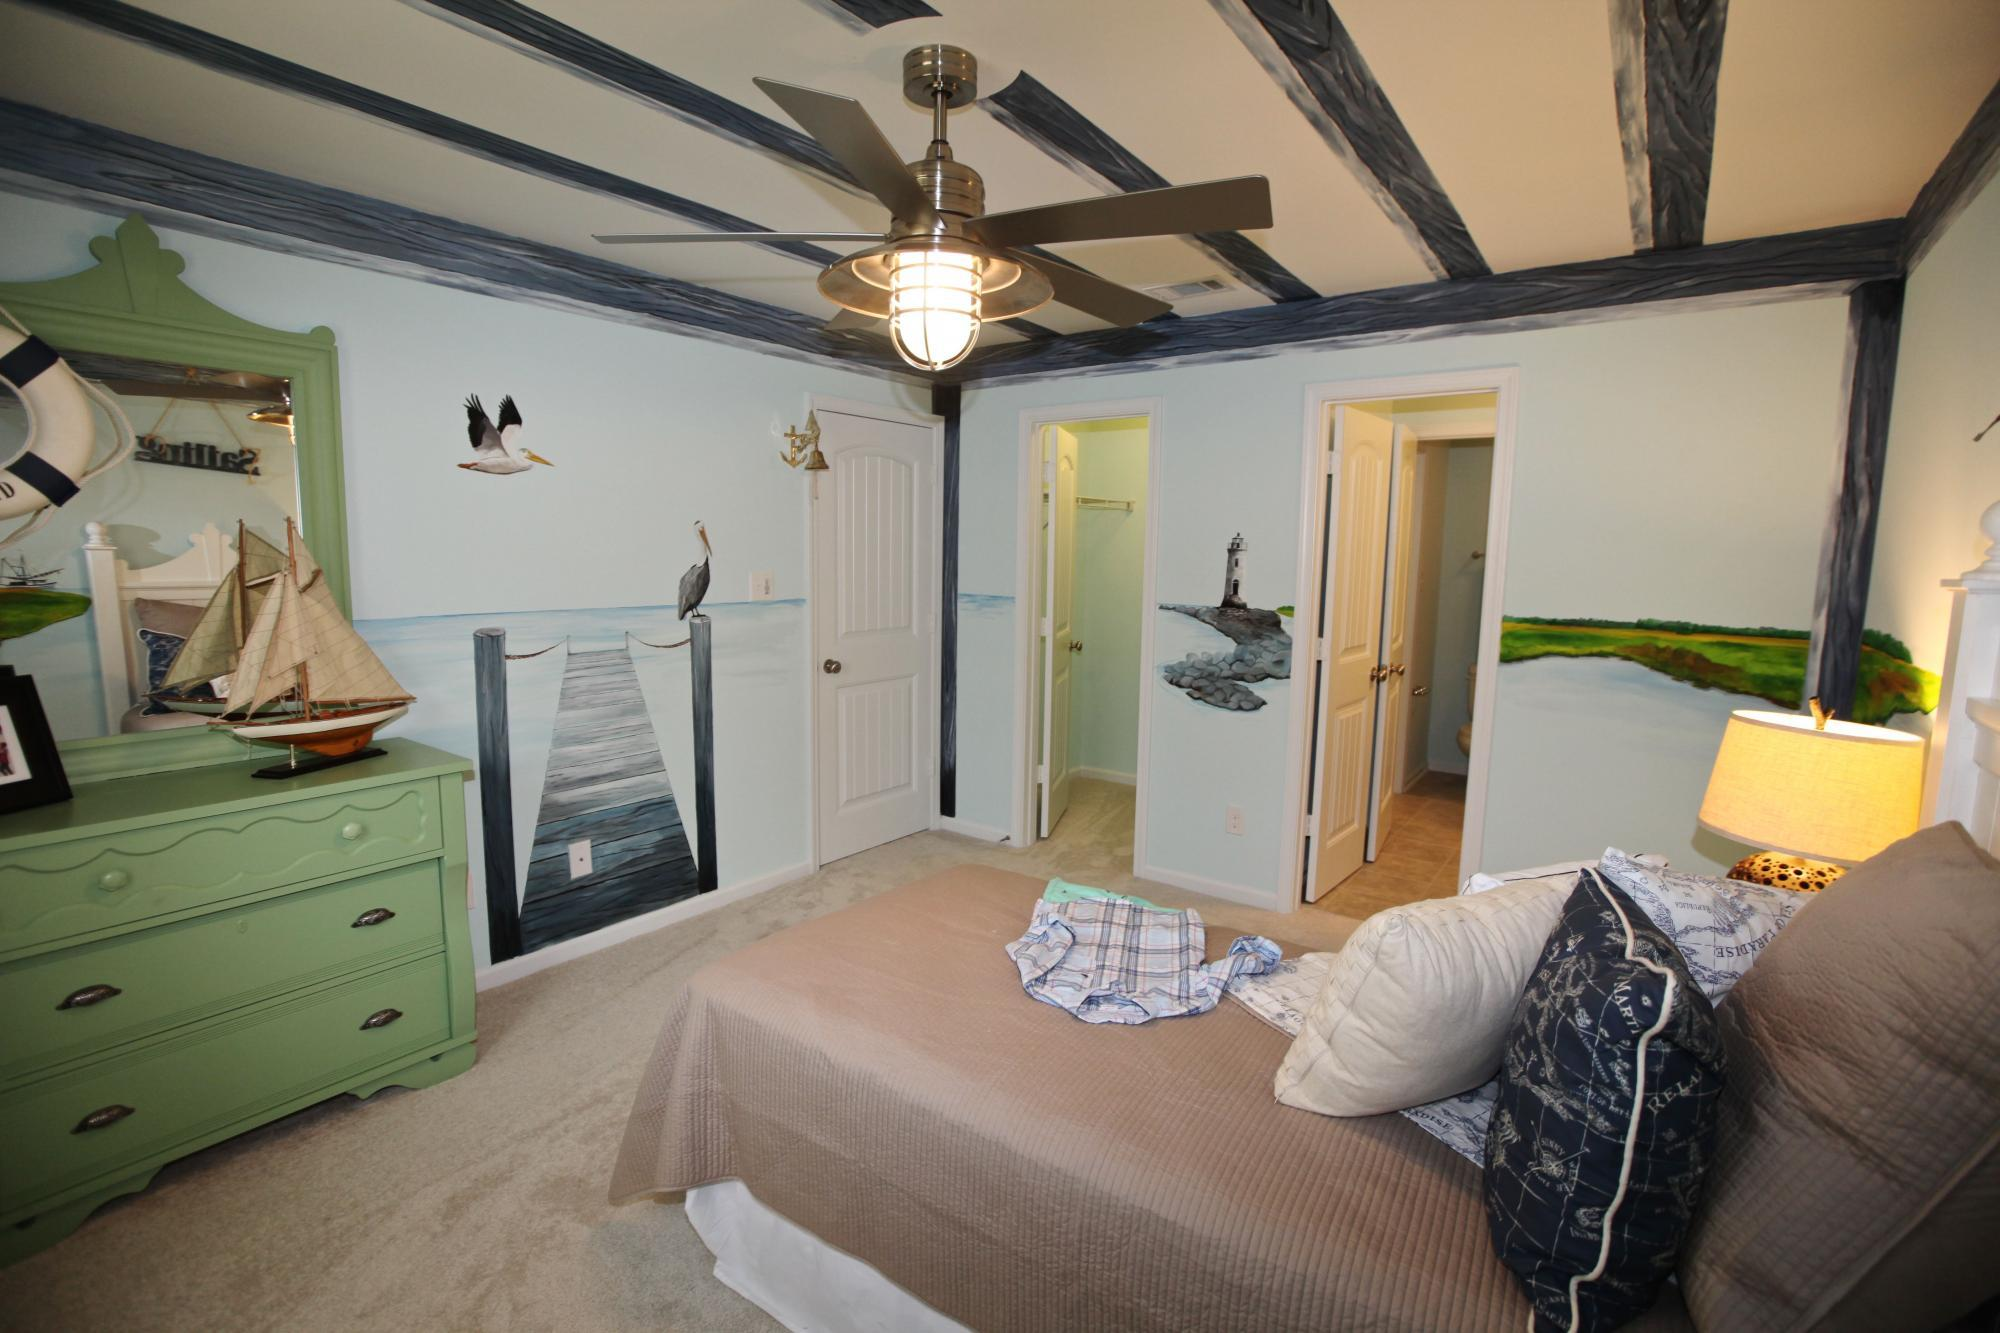 Bedroom featured in the Camden By Konter Quality Homes in Savannah, GA